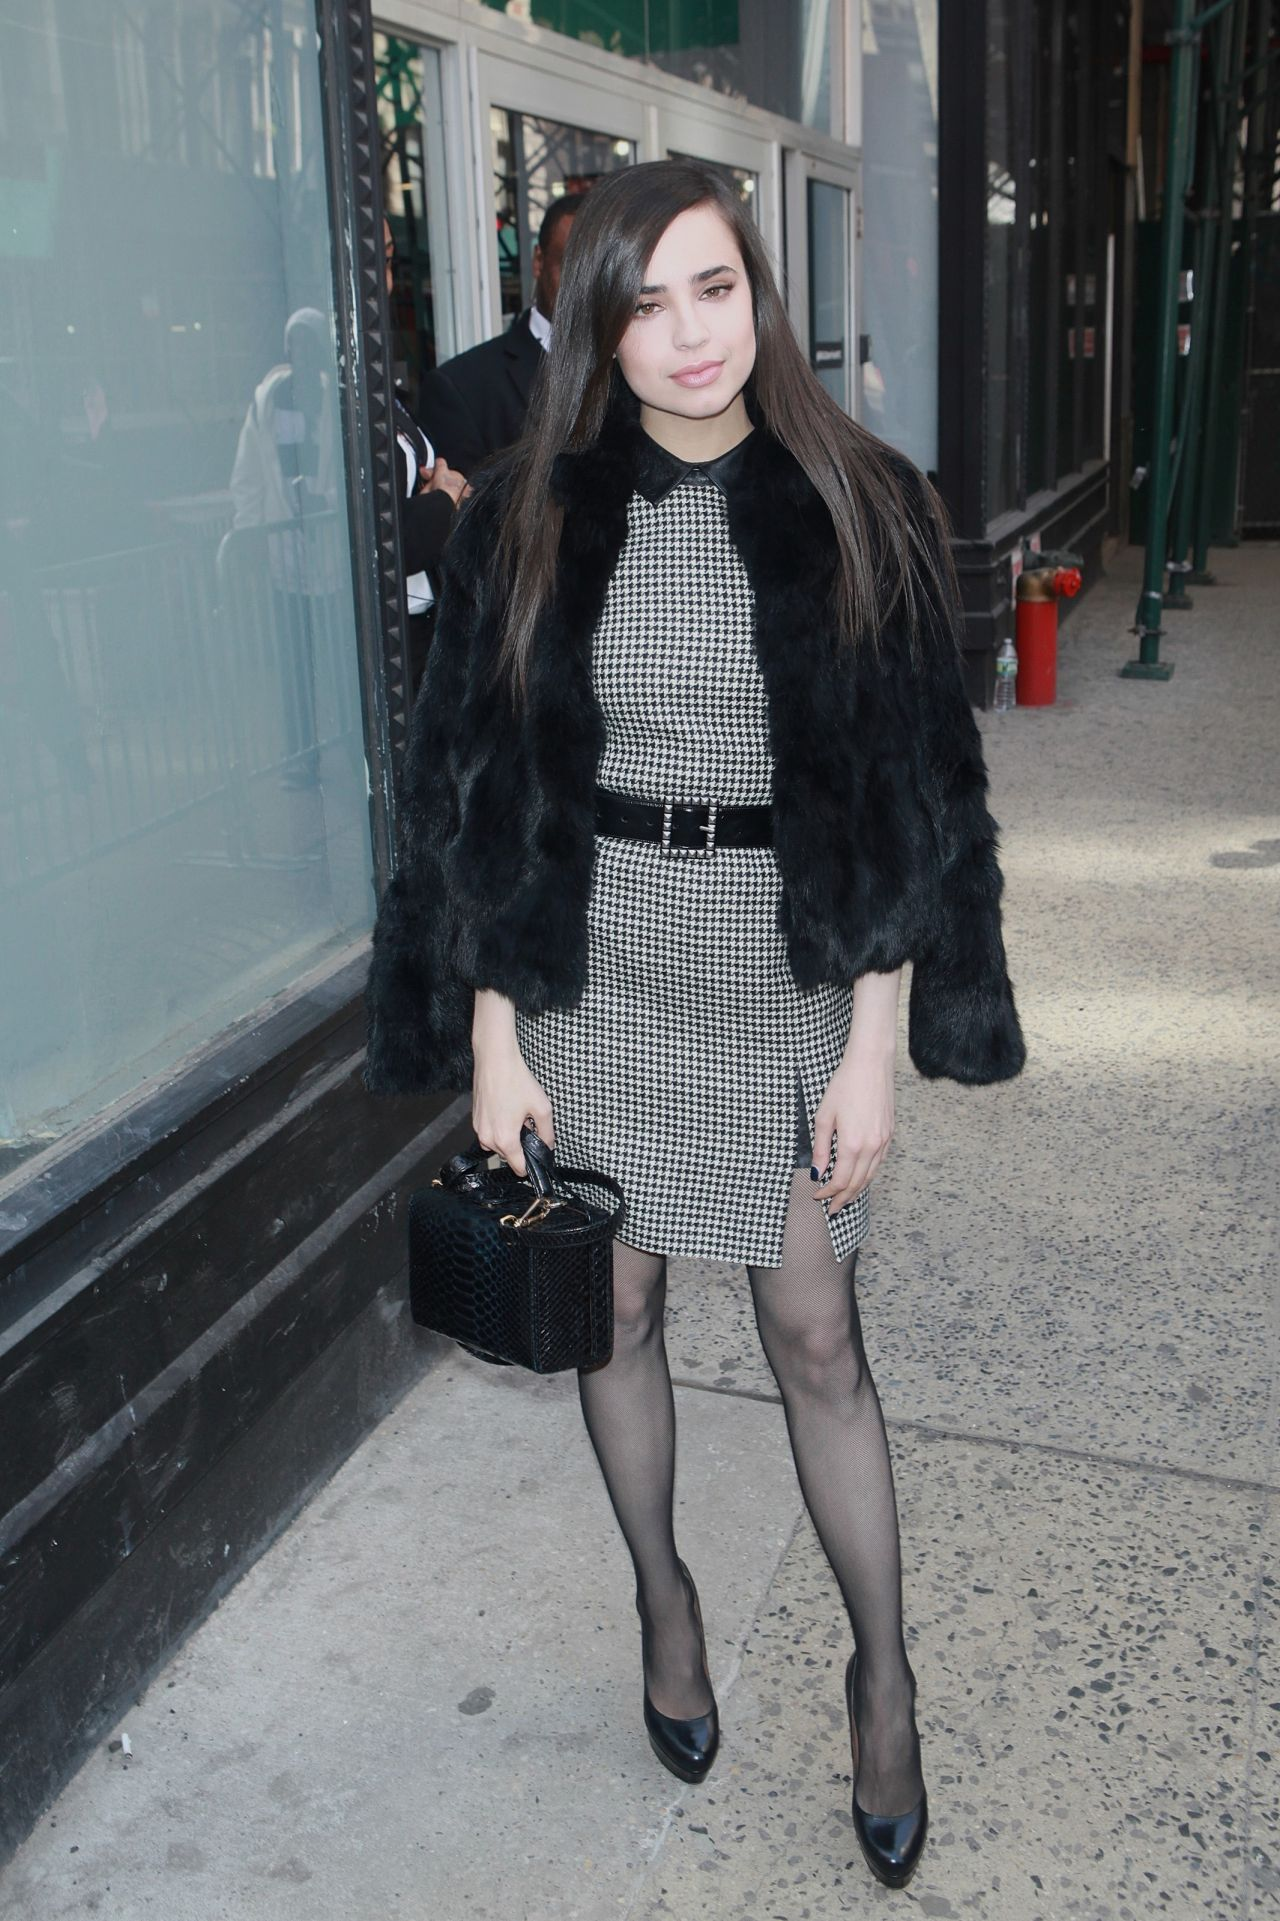 Sofia Carson Chic Outfit Aol Build Studios In Nyc 3 10 2017